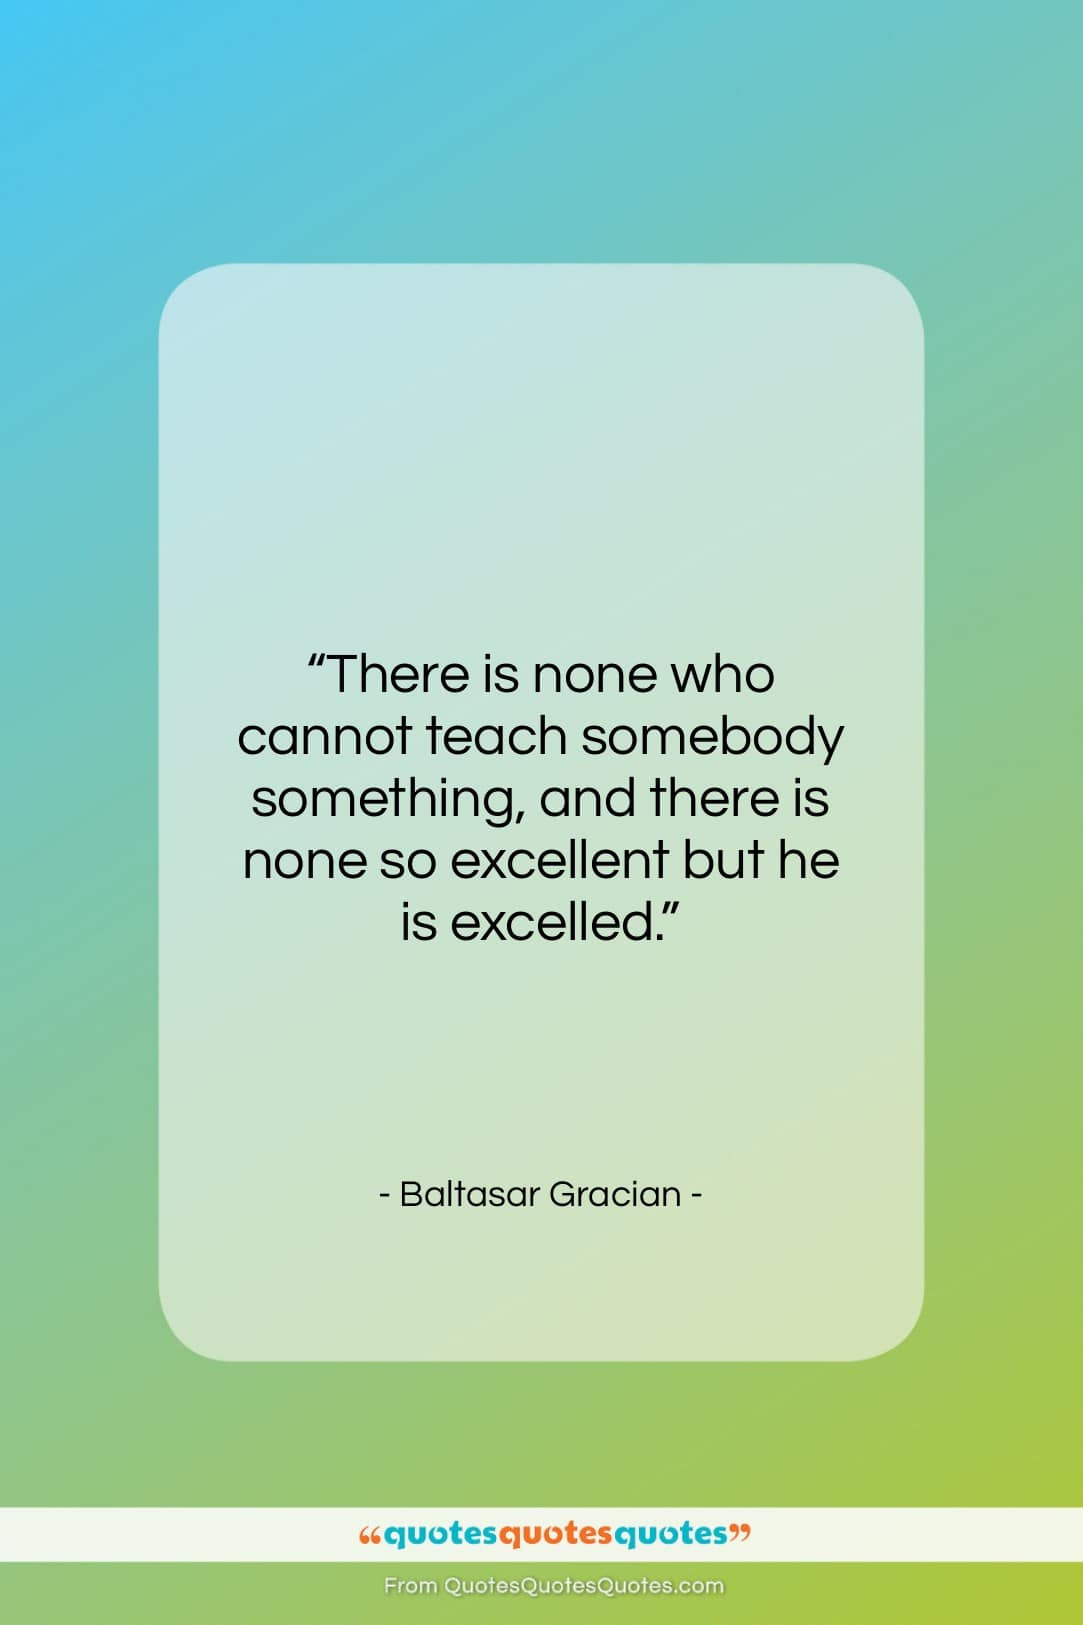 """Baltasar Gracian quote: """"There is none who cannot teach somebody…""""- at QuotesQuotesQuotes.com"""